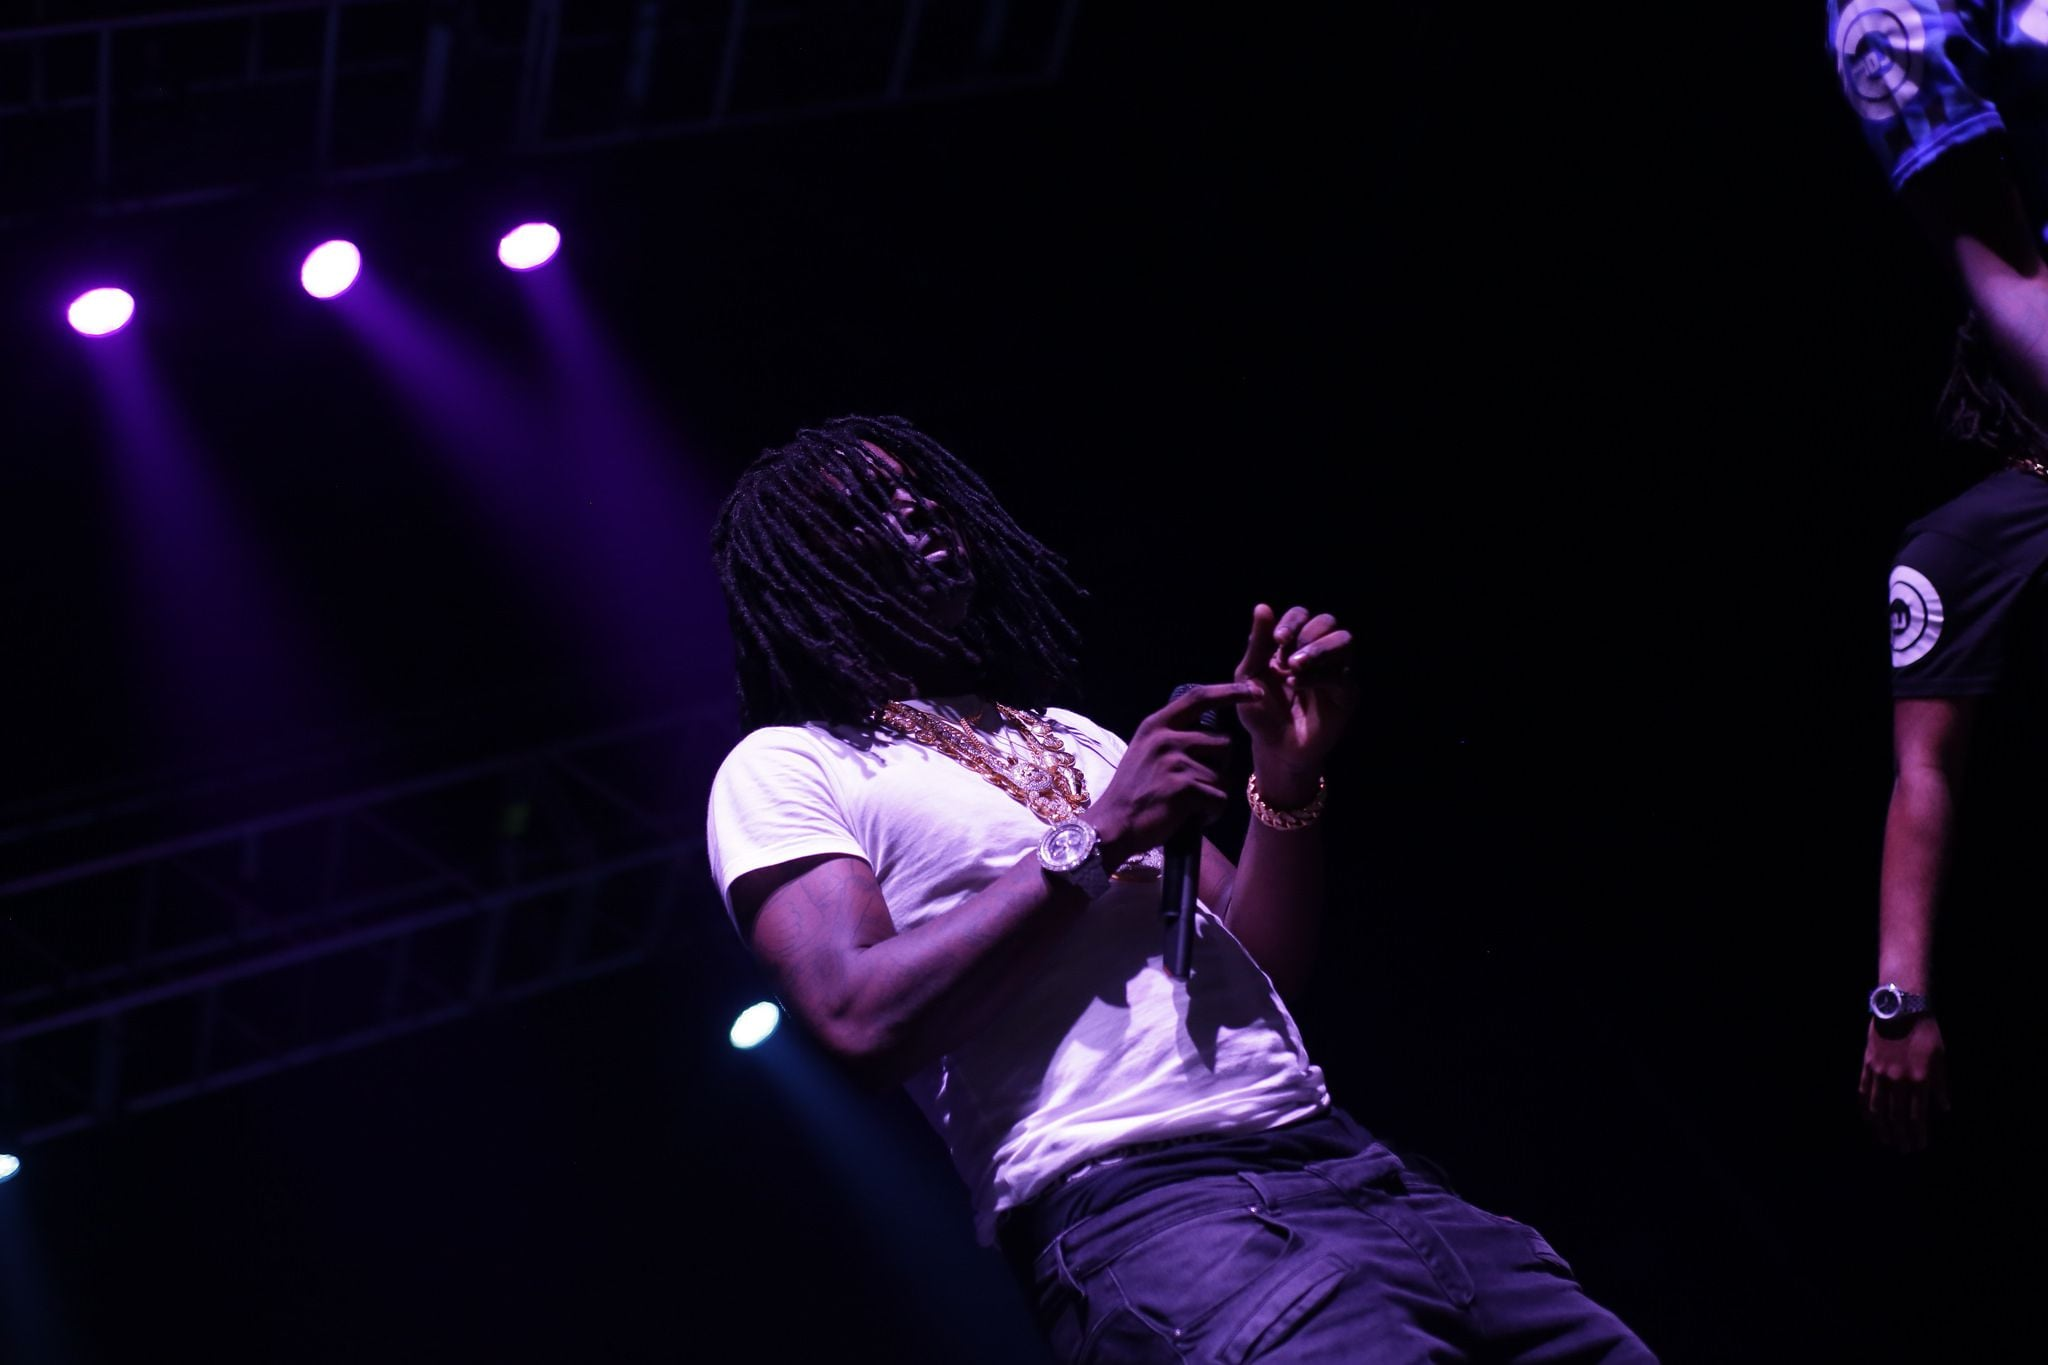 Chief Keef HD wallpapers Download Keith Cozart rapper